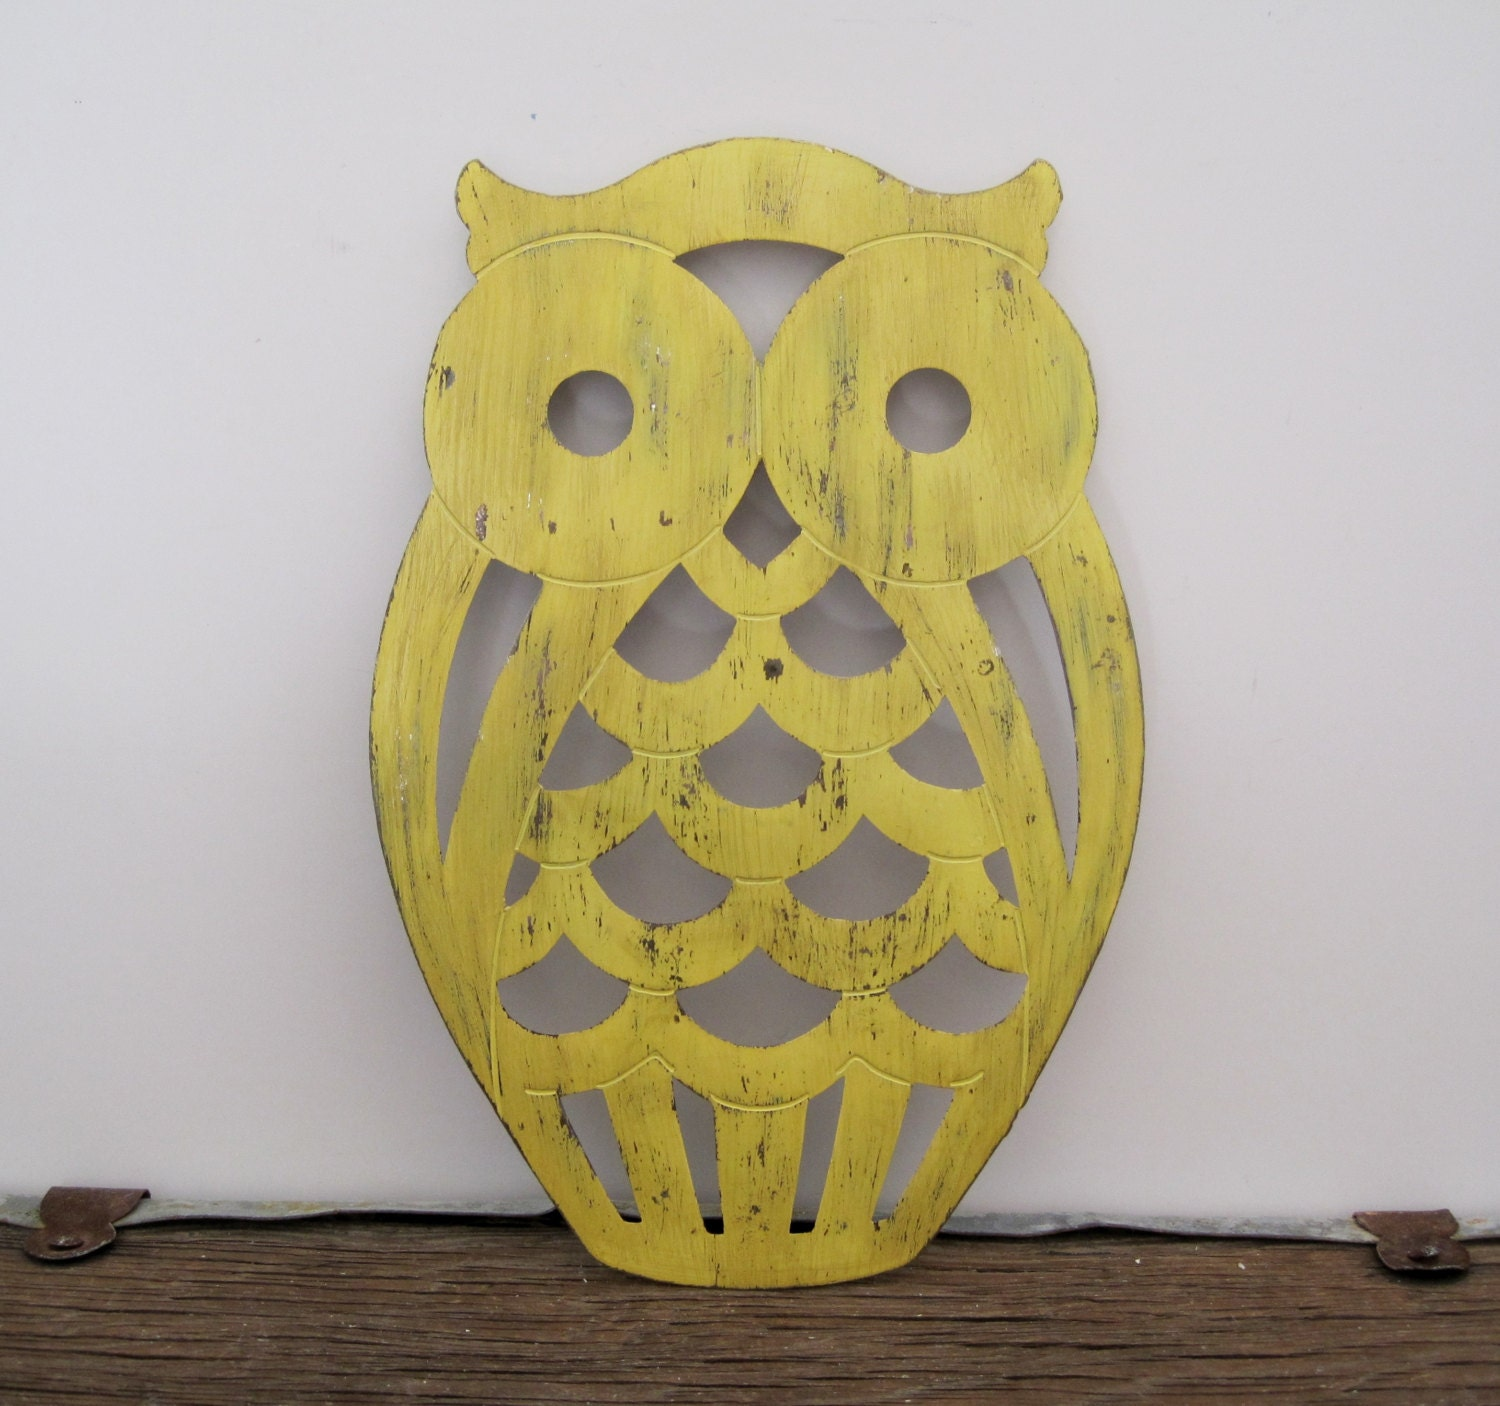 Vintage Owl Kitchen Decor: Rustic Owl Trivet Vintage Home Decor By SeaLoveAndSalt On Etsy